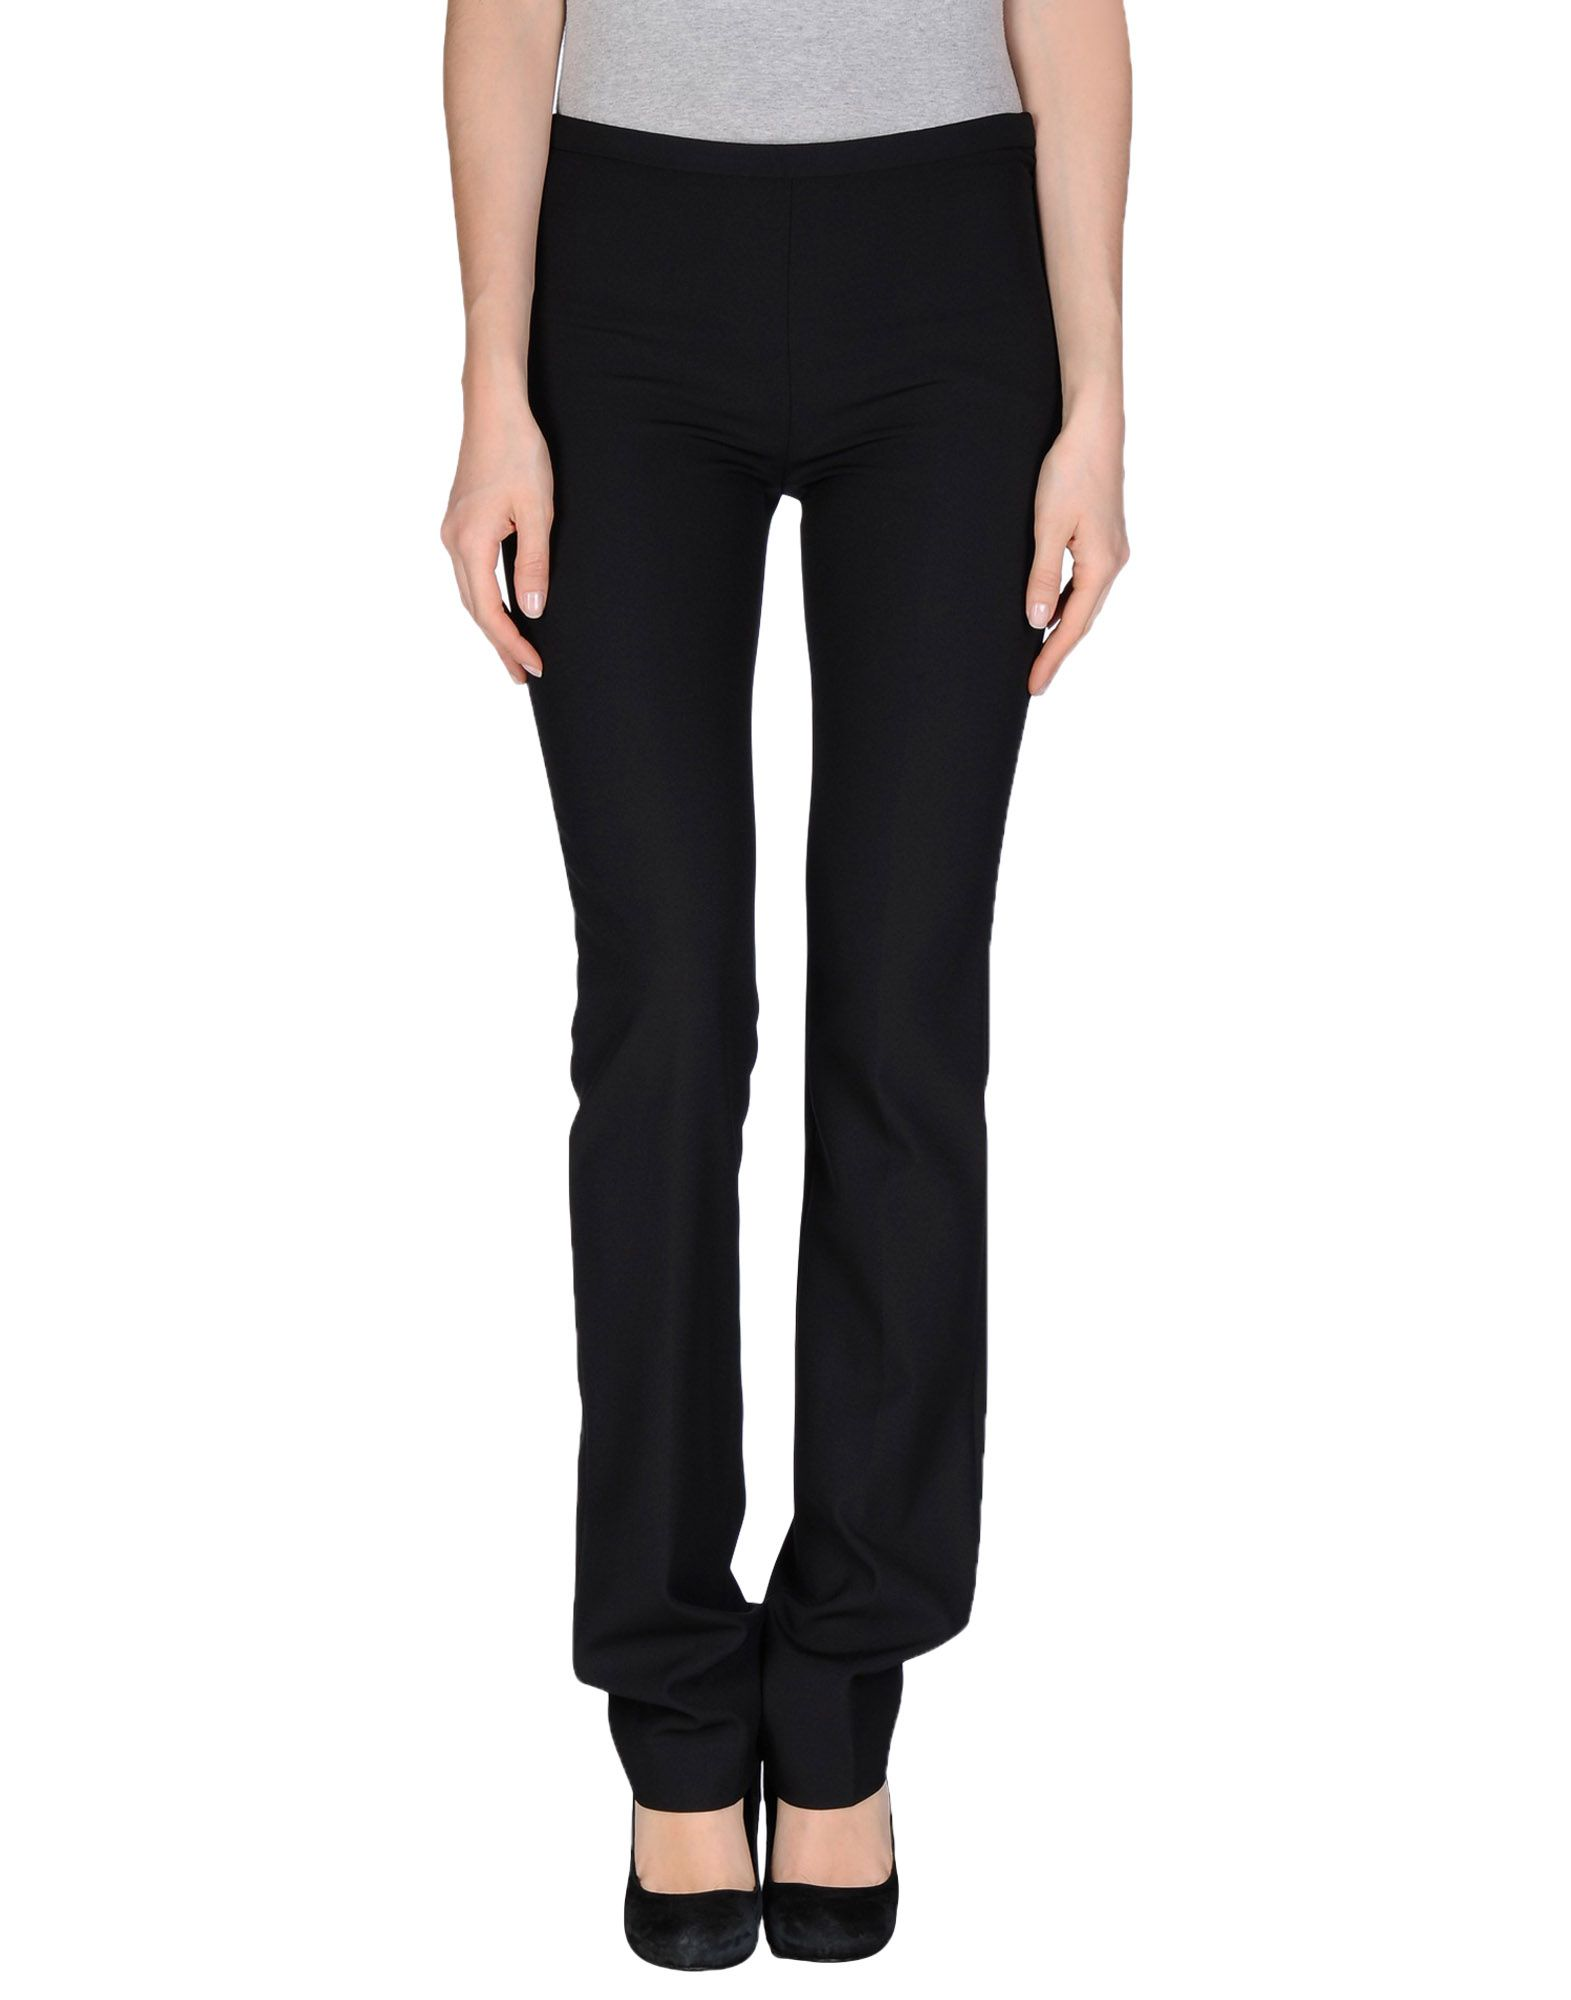 Space Style Concept Casual Pants   Women Space Style Concept Casual Pants   36685273MI